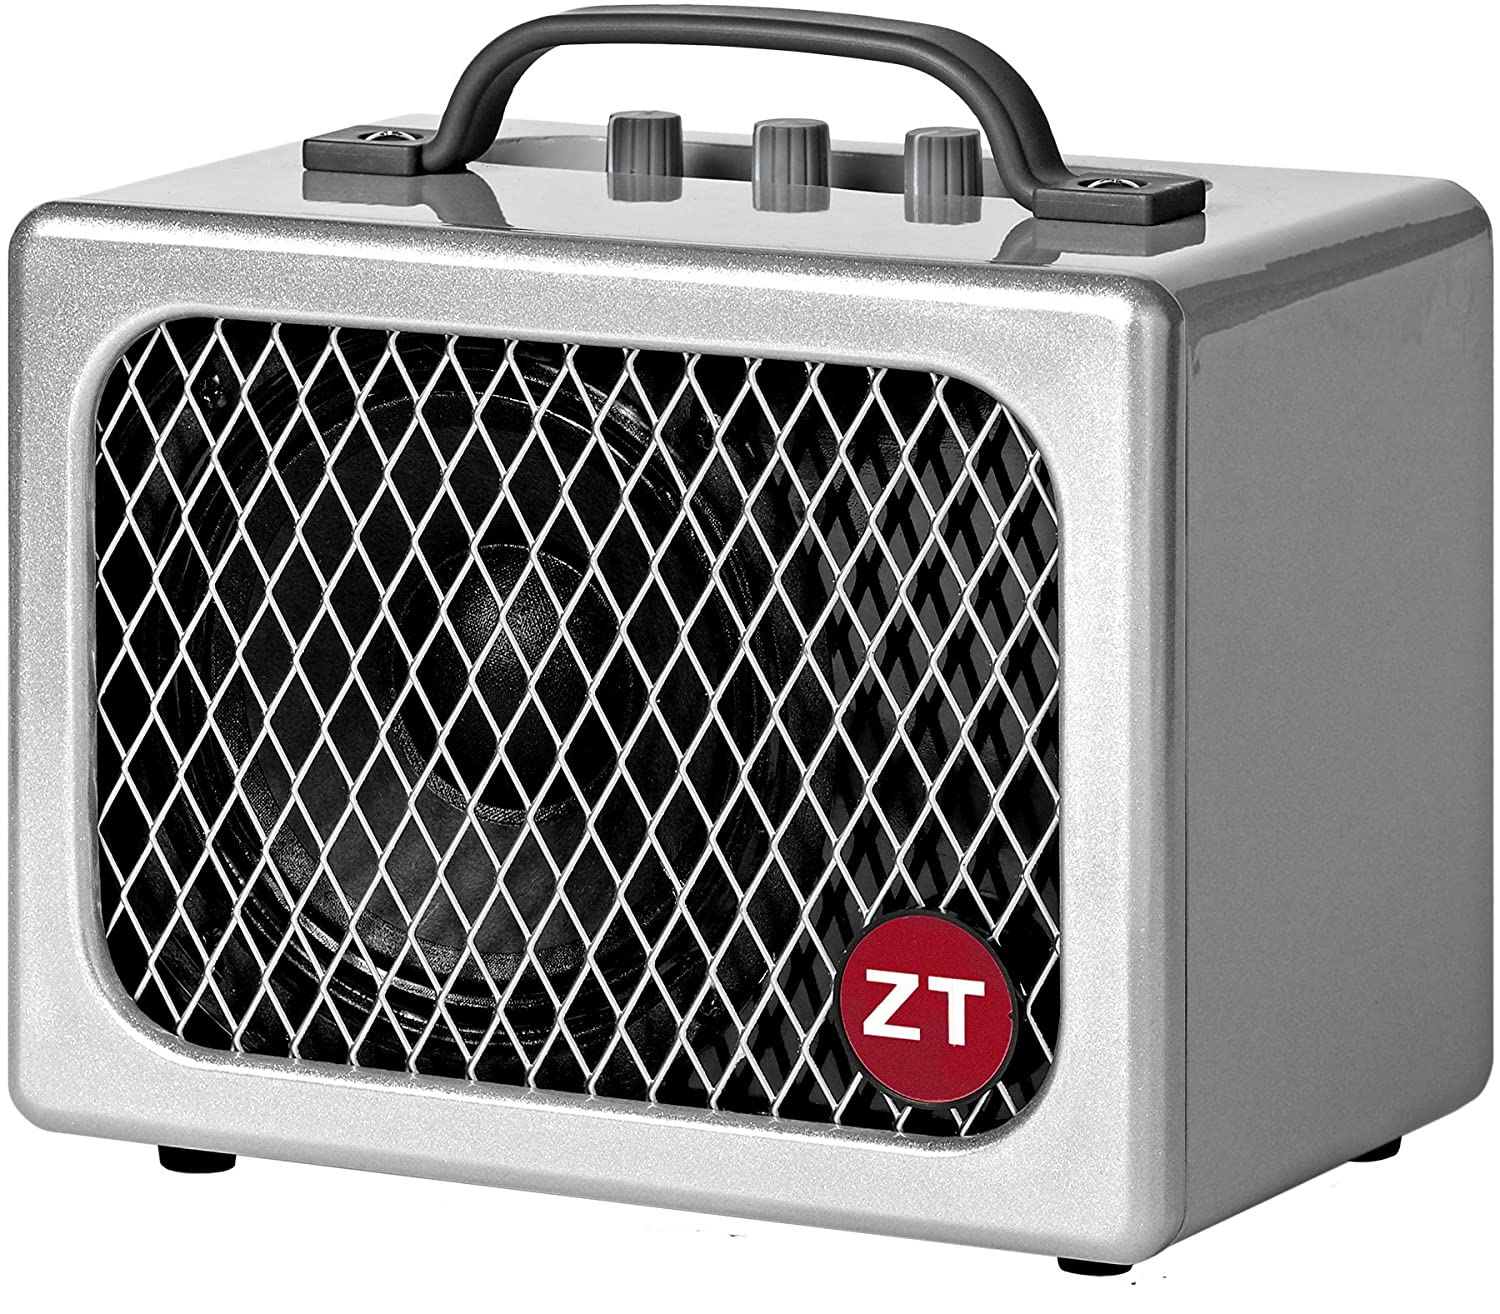 ZT Lunchbox 1x6.5 8ohm Extension Cabinet ZT Amplifiers Inc. Lunchbox Cab